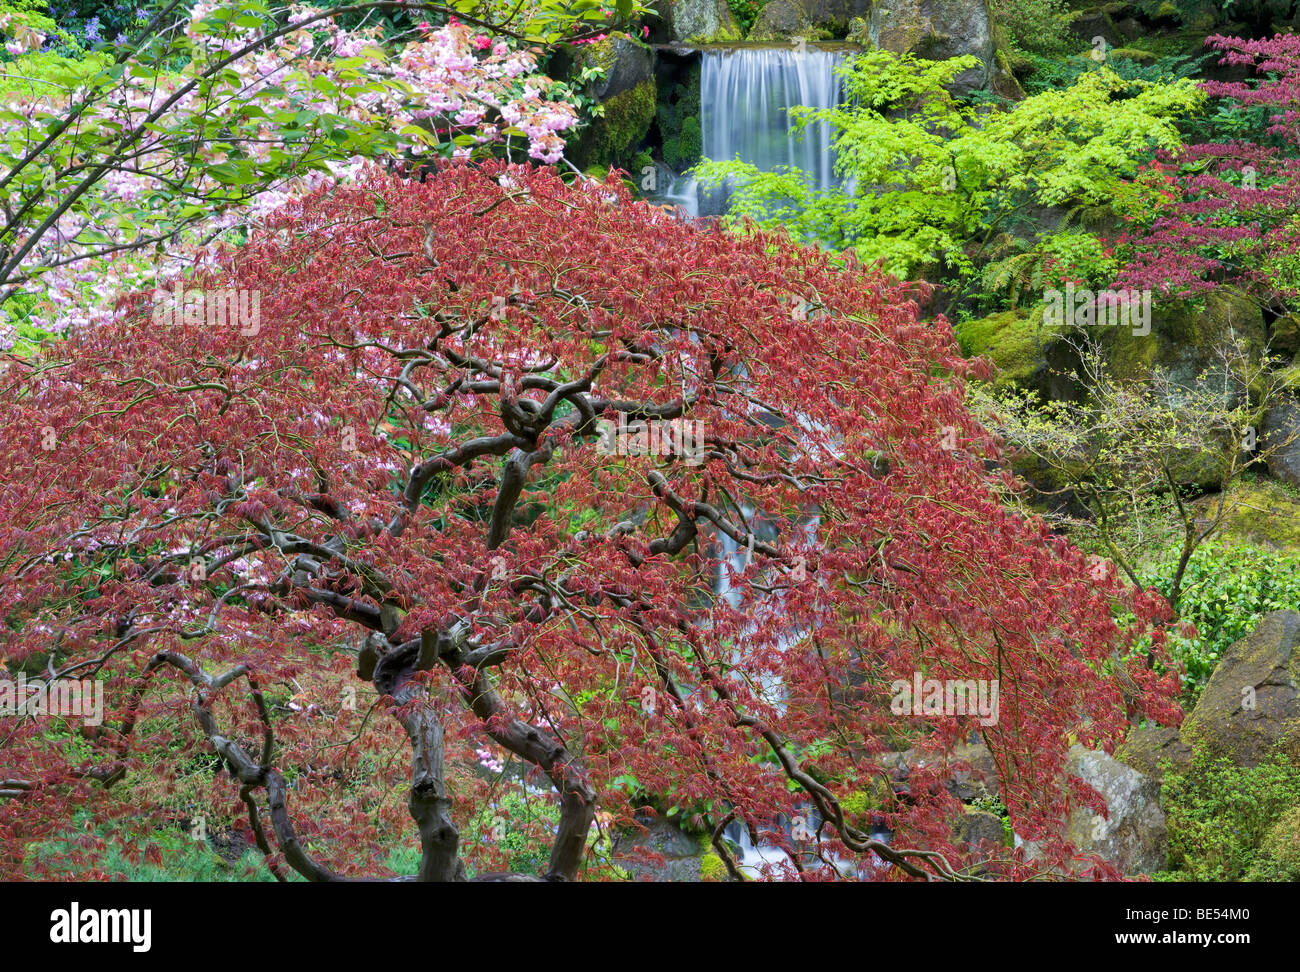 Waterfalls and cherry blossoms with Japanese maple early growth. Portland Japanese Gardens, Oregon. - Stock Image